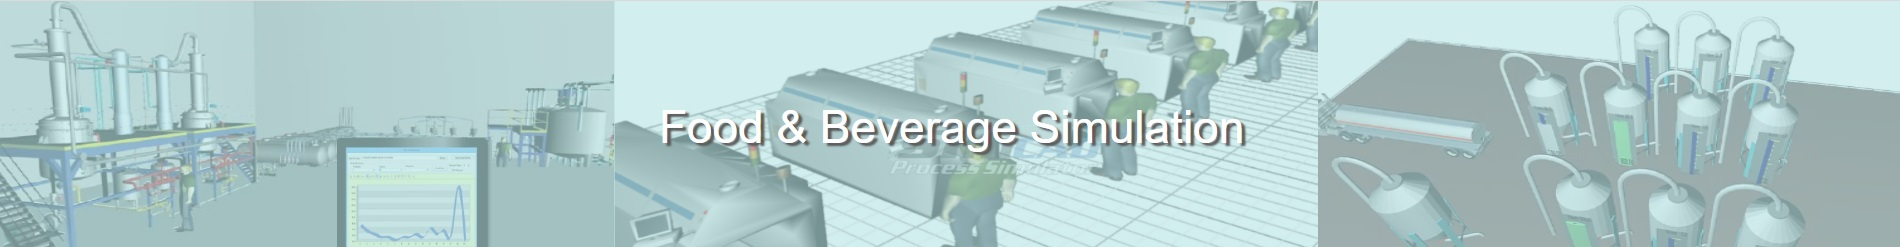 food & beverage simulation - food & beverage simulation software